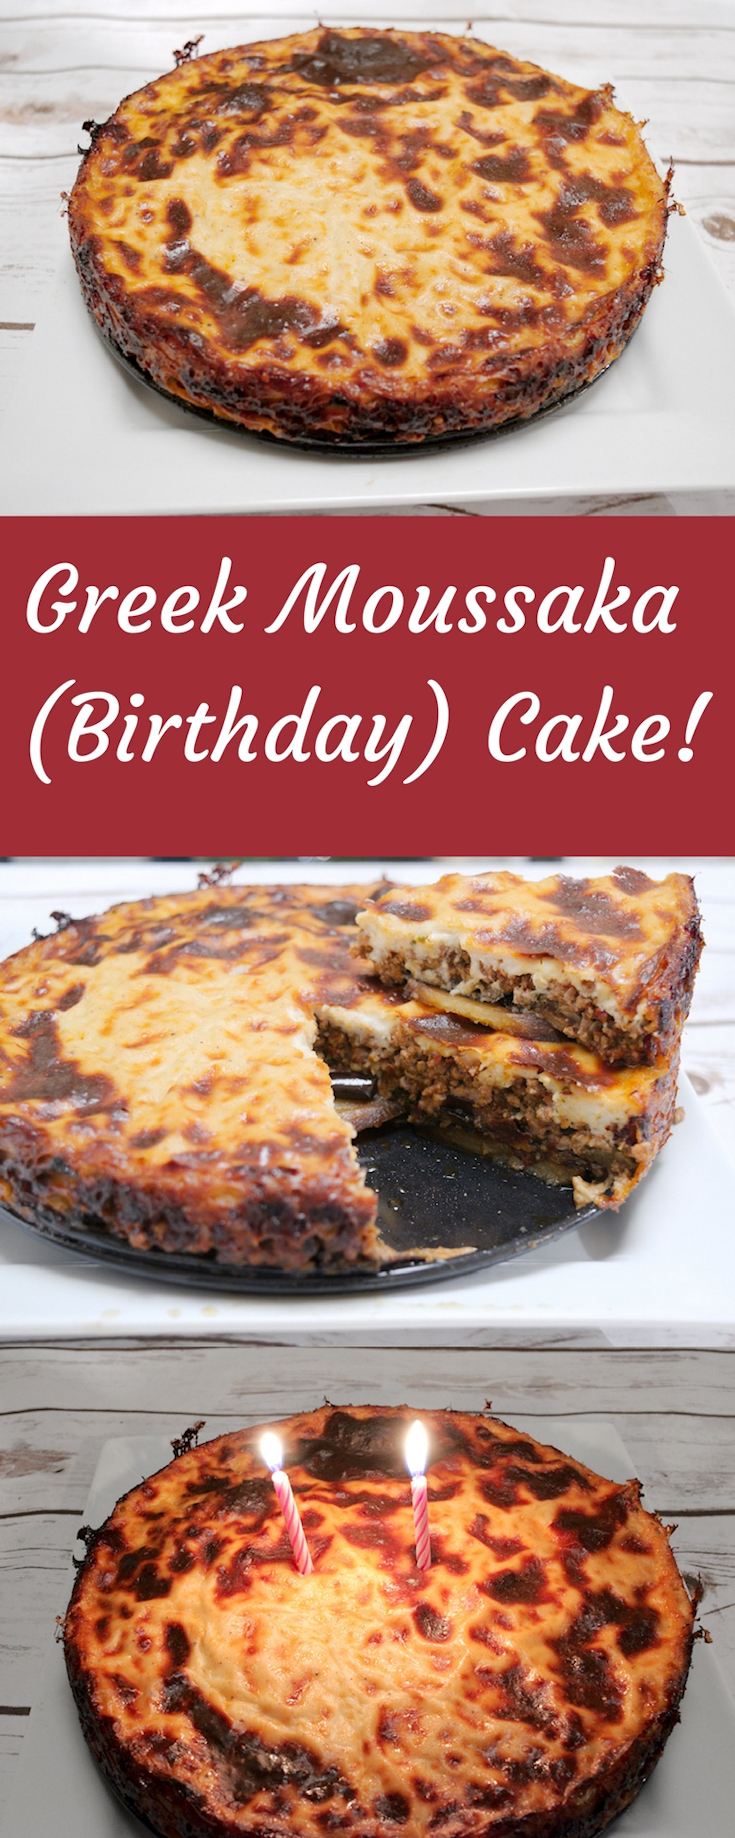 Perfect Greek Moussaka Cake